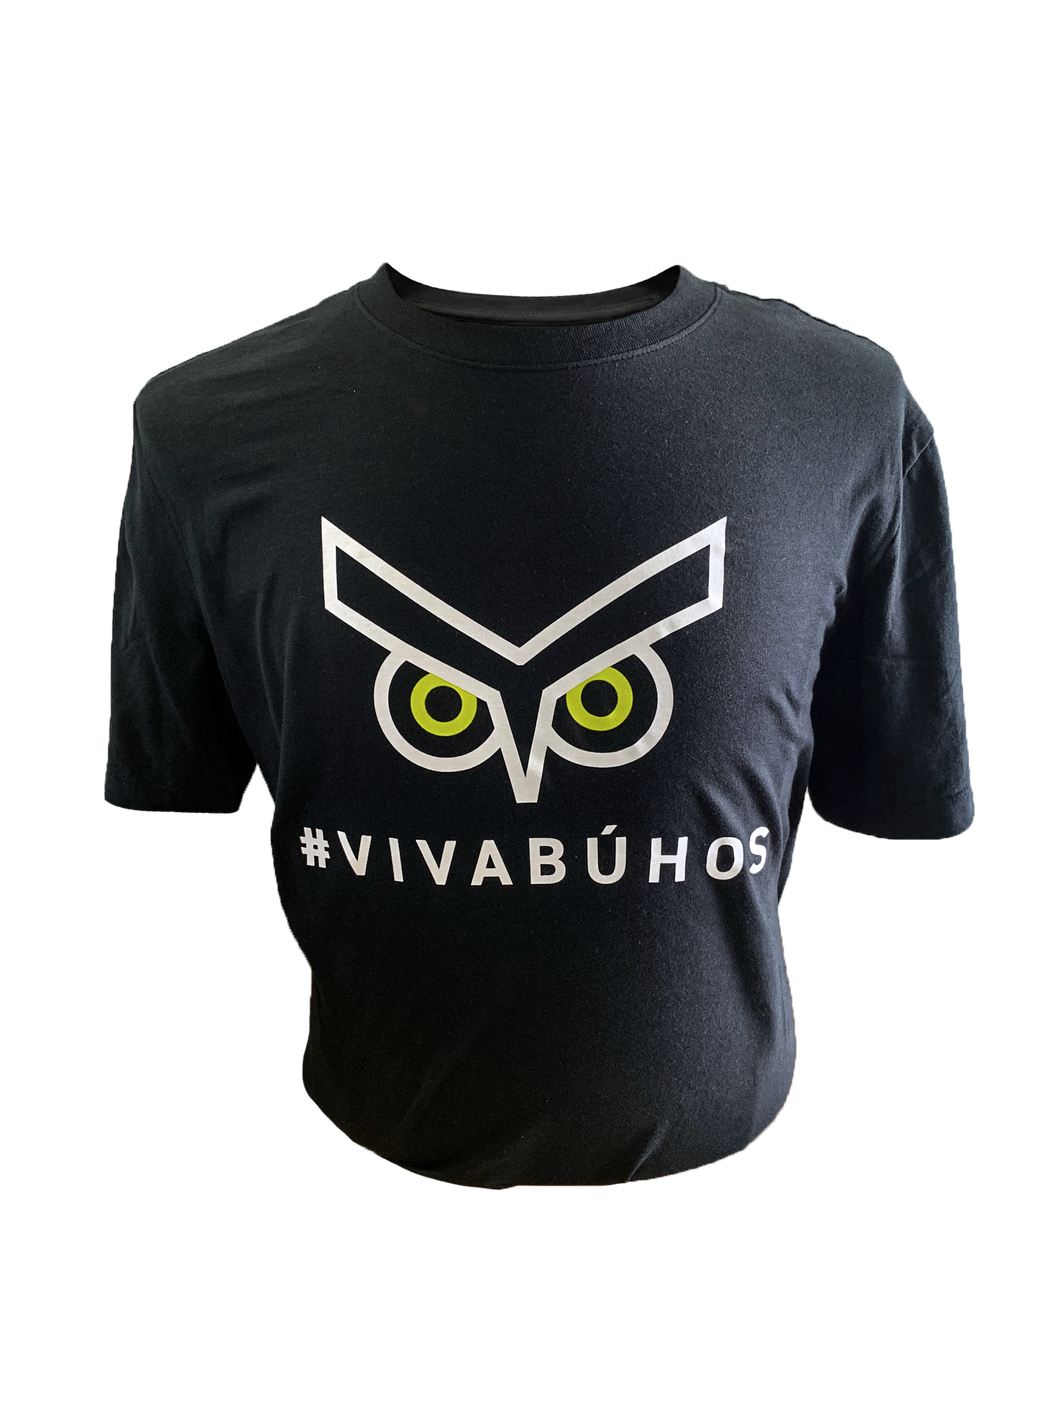 Union Omaha Men's Nike Black #VIVABUHOS Core Tee